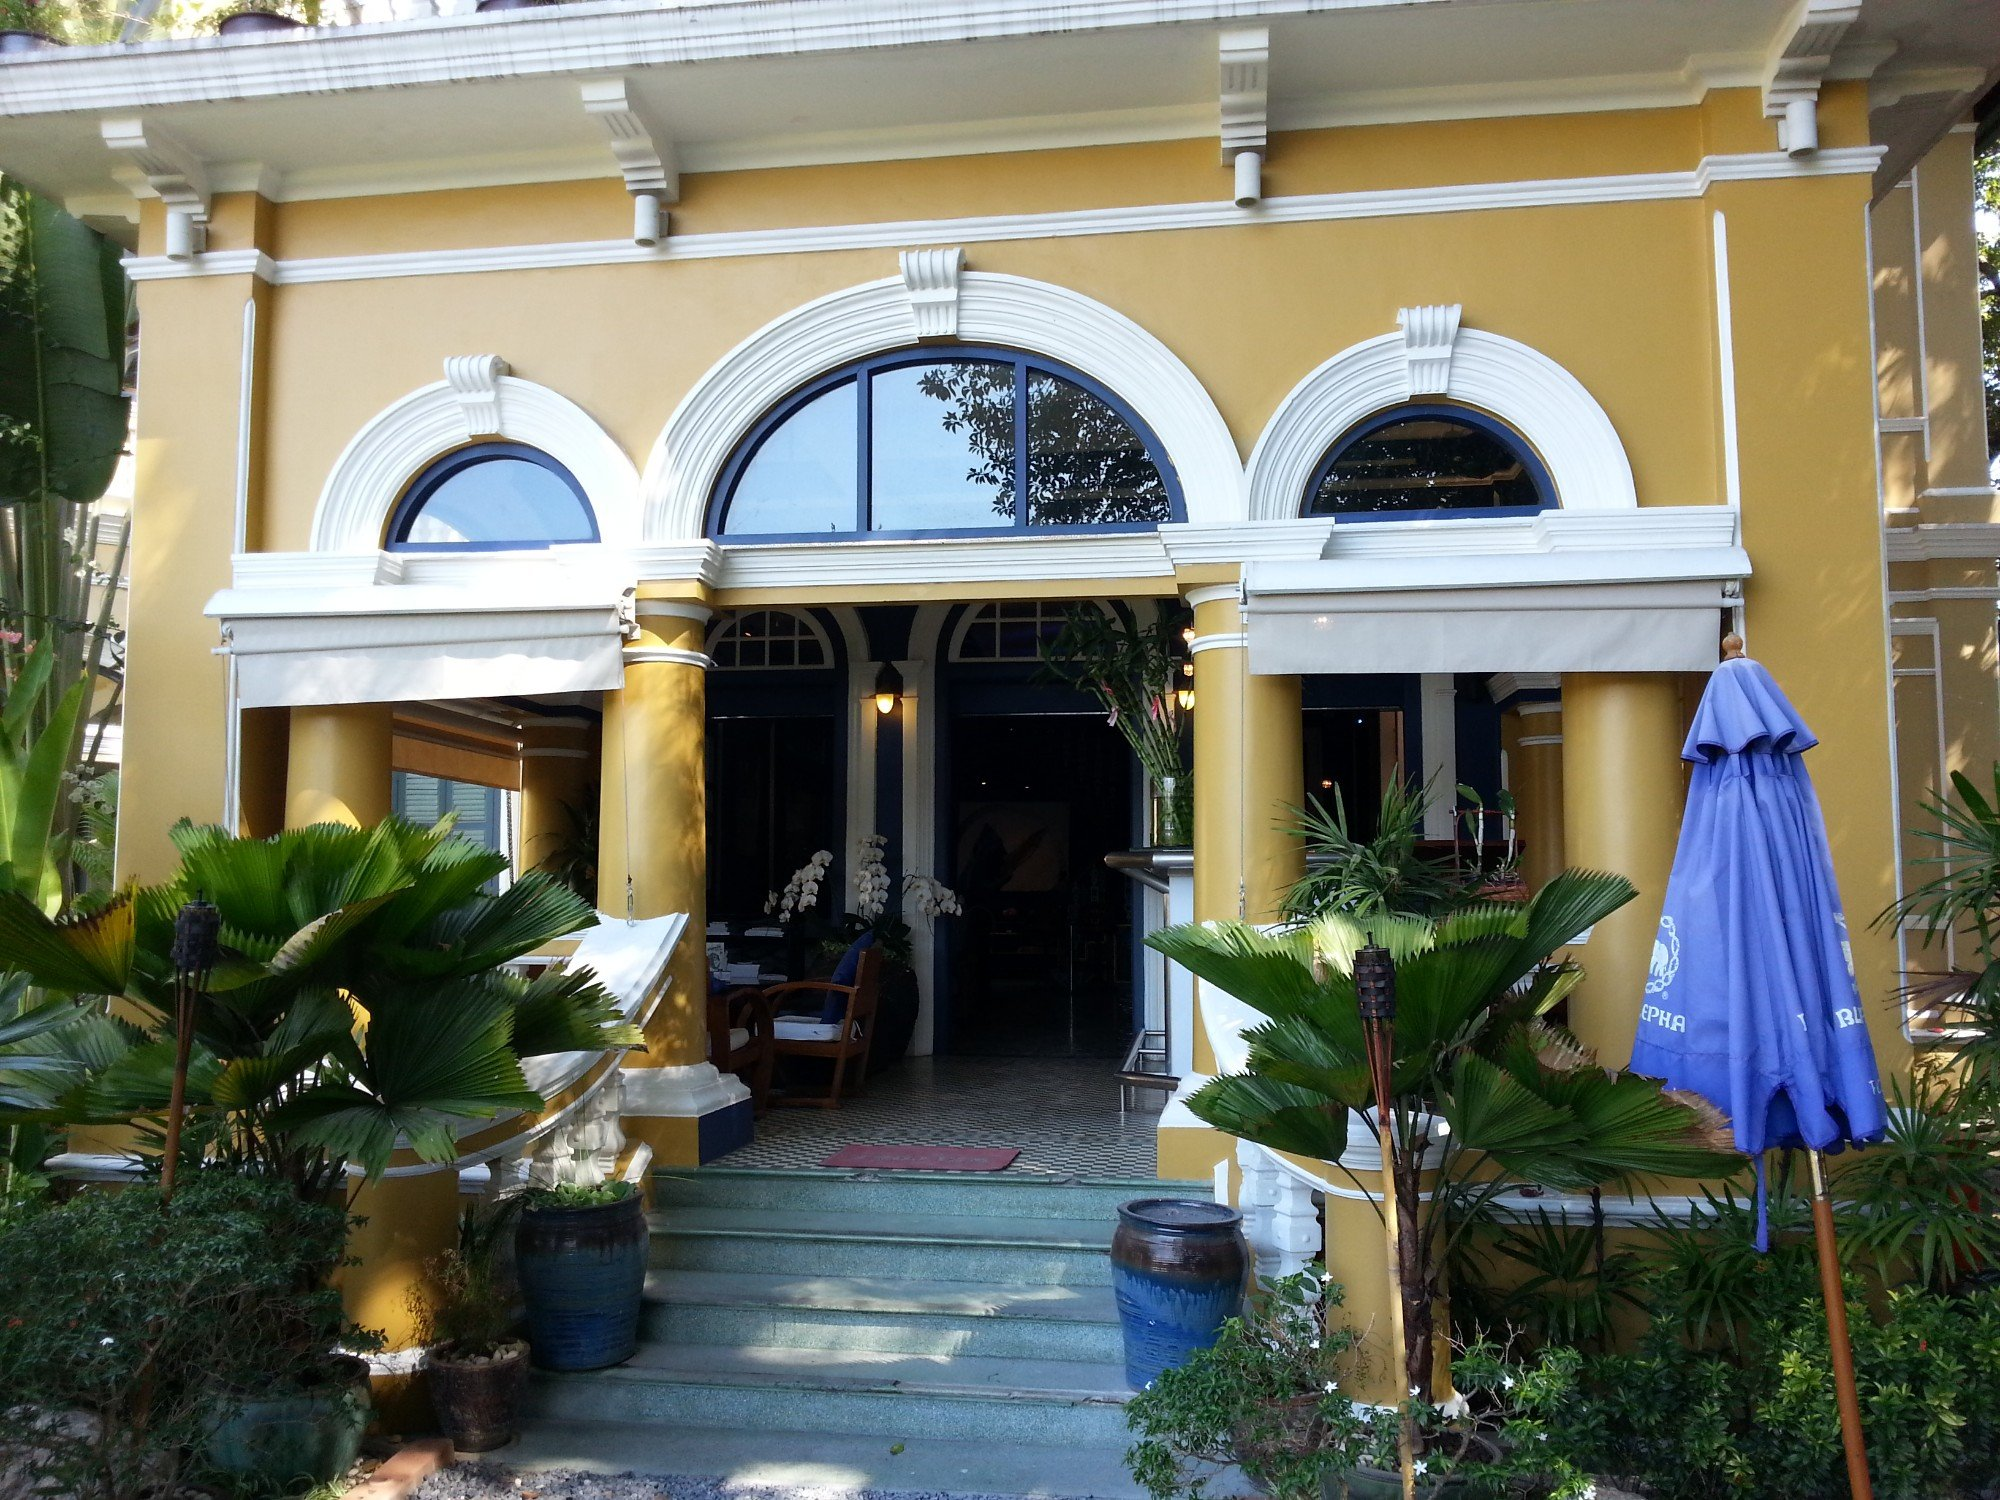 Main entrance to the Blue Elephant Restaurant